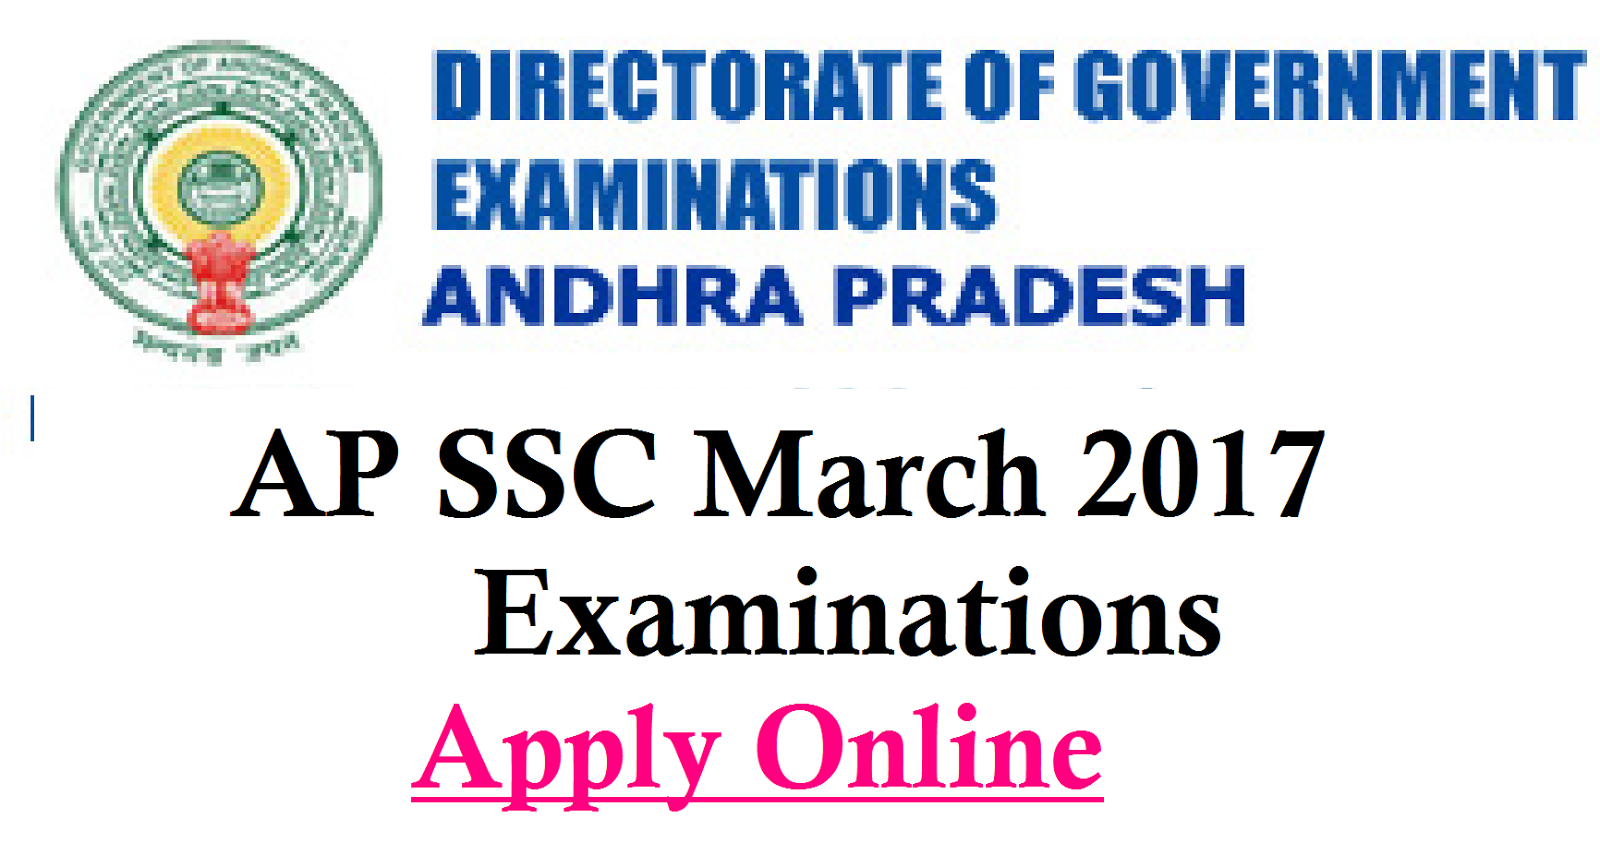 AP SSC Exam 2017 Nominal Rolls User Manual Online Registration